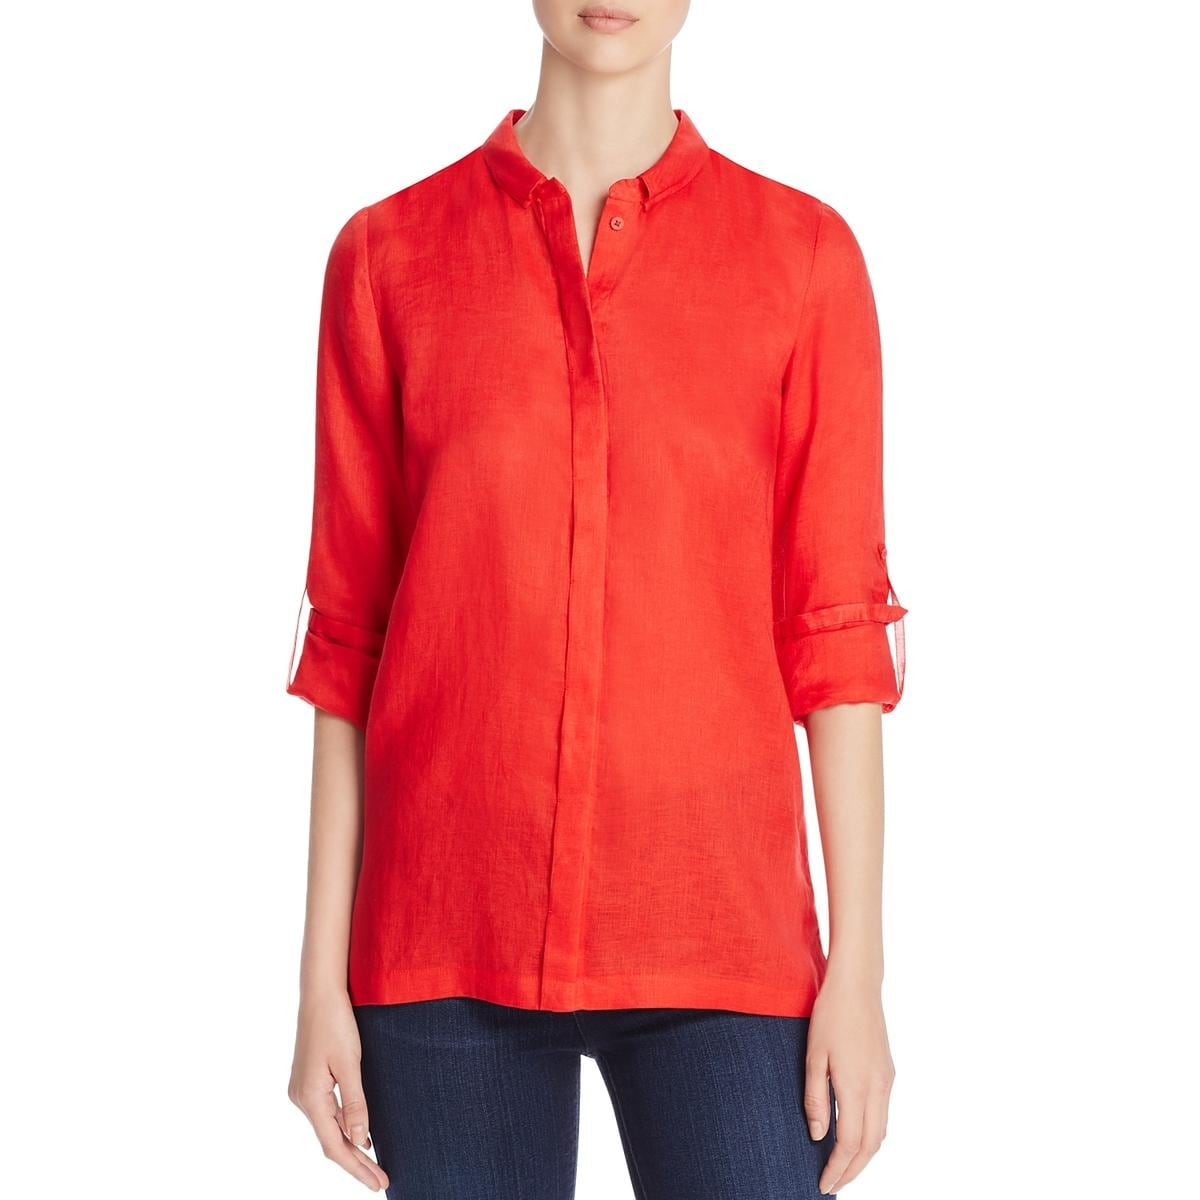 949bfa4df0d8 Shop Elie Tahari Womens Carly Blouse Linen Pleated Back - Free Shipping  Today - Overstock - 15088412